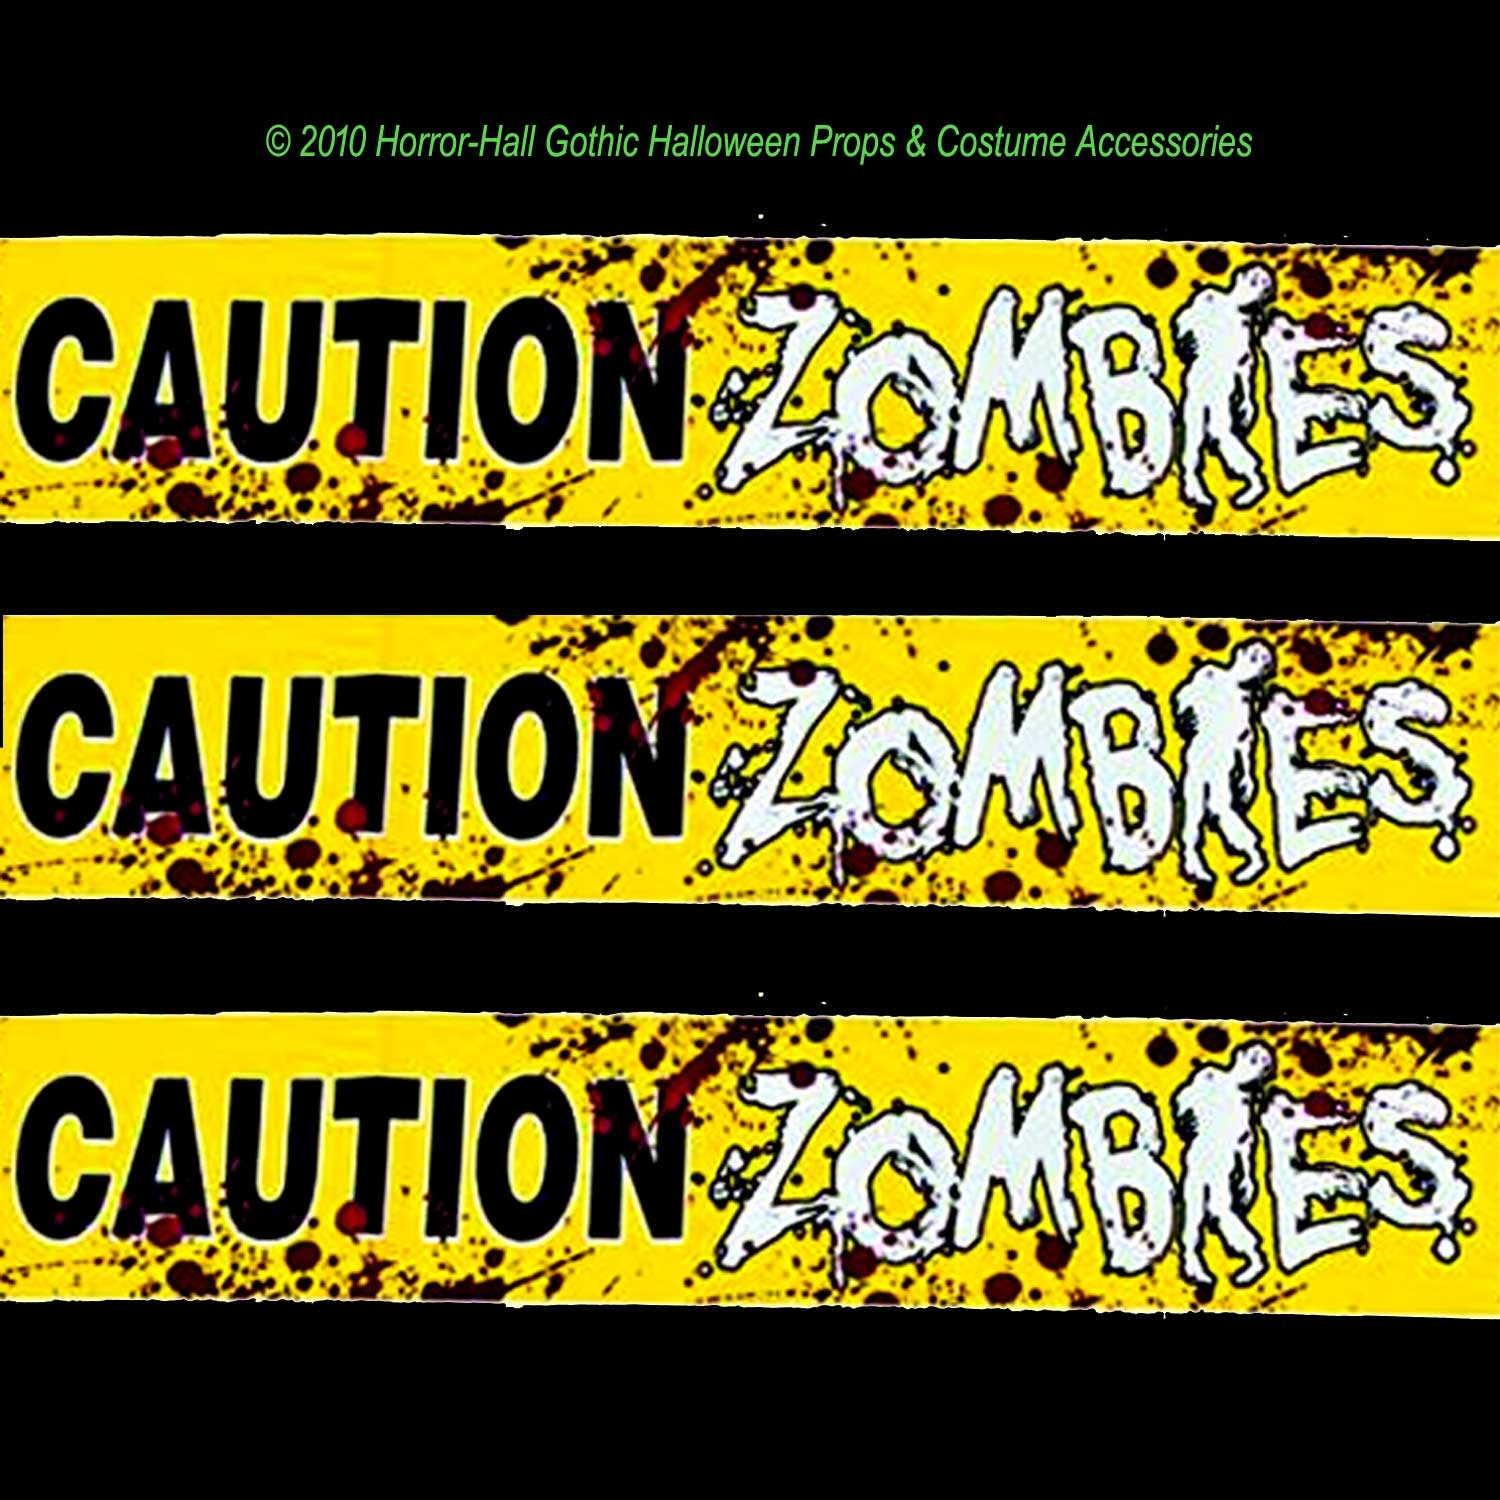 bloody-walking-dead-caution-zombies-fright-tape-border-halloween ...